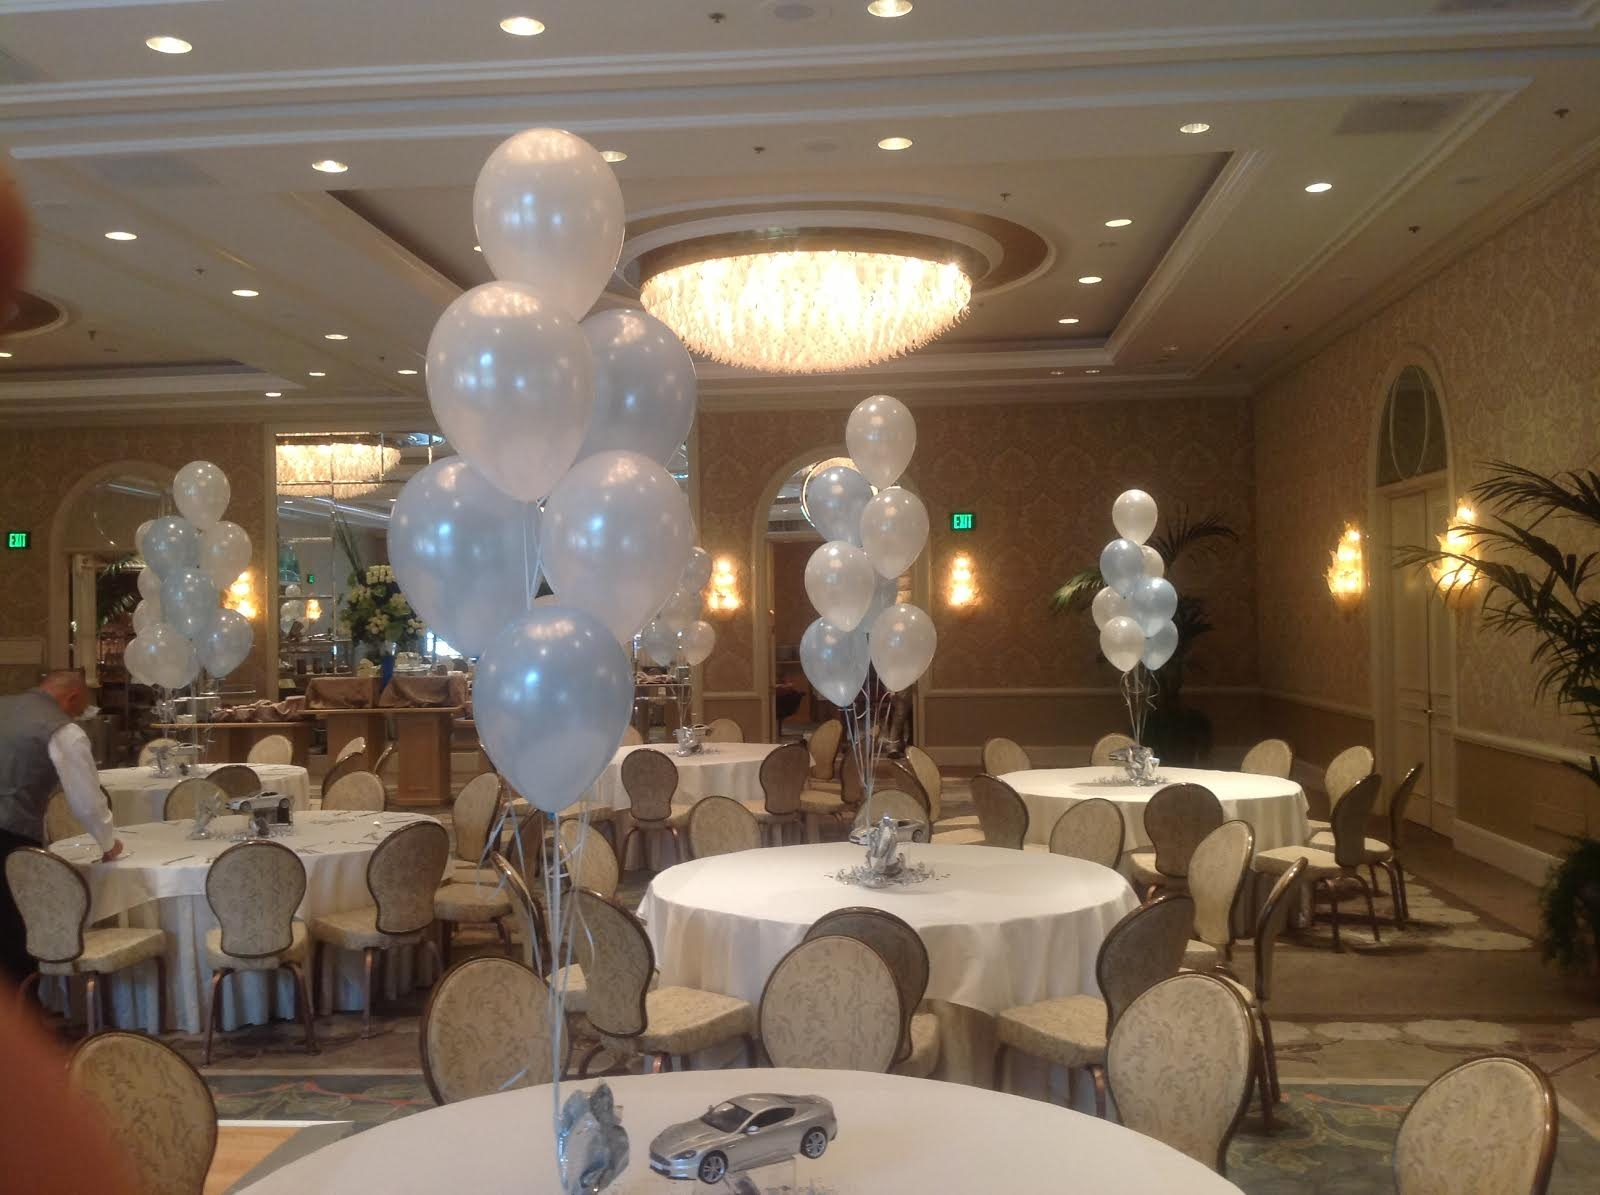 310 215 0700 for Balloon decoration los angeles